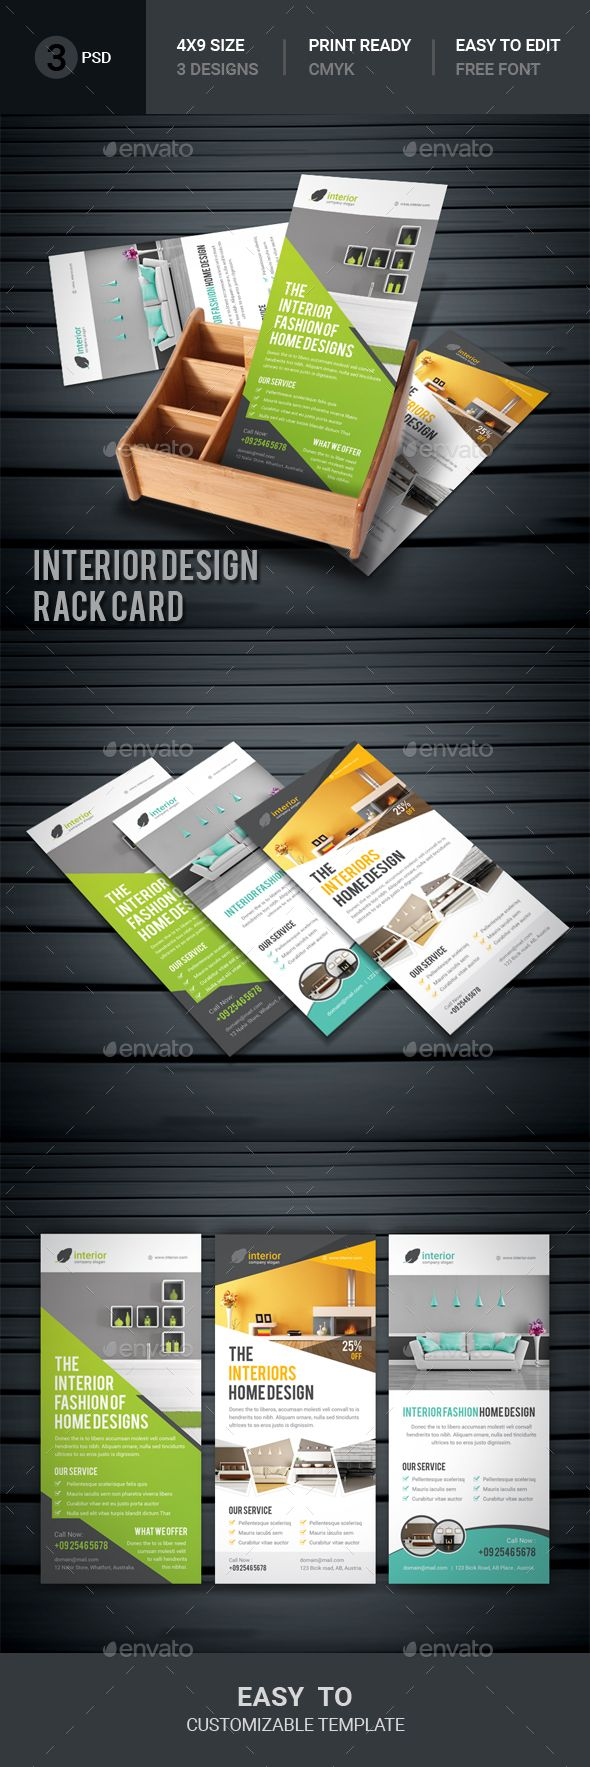 Interior Design Rack Card Corporate Flyers Download Here Https - Rack card design template